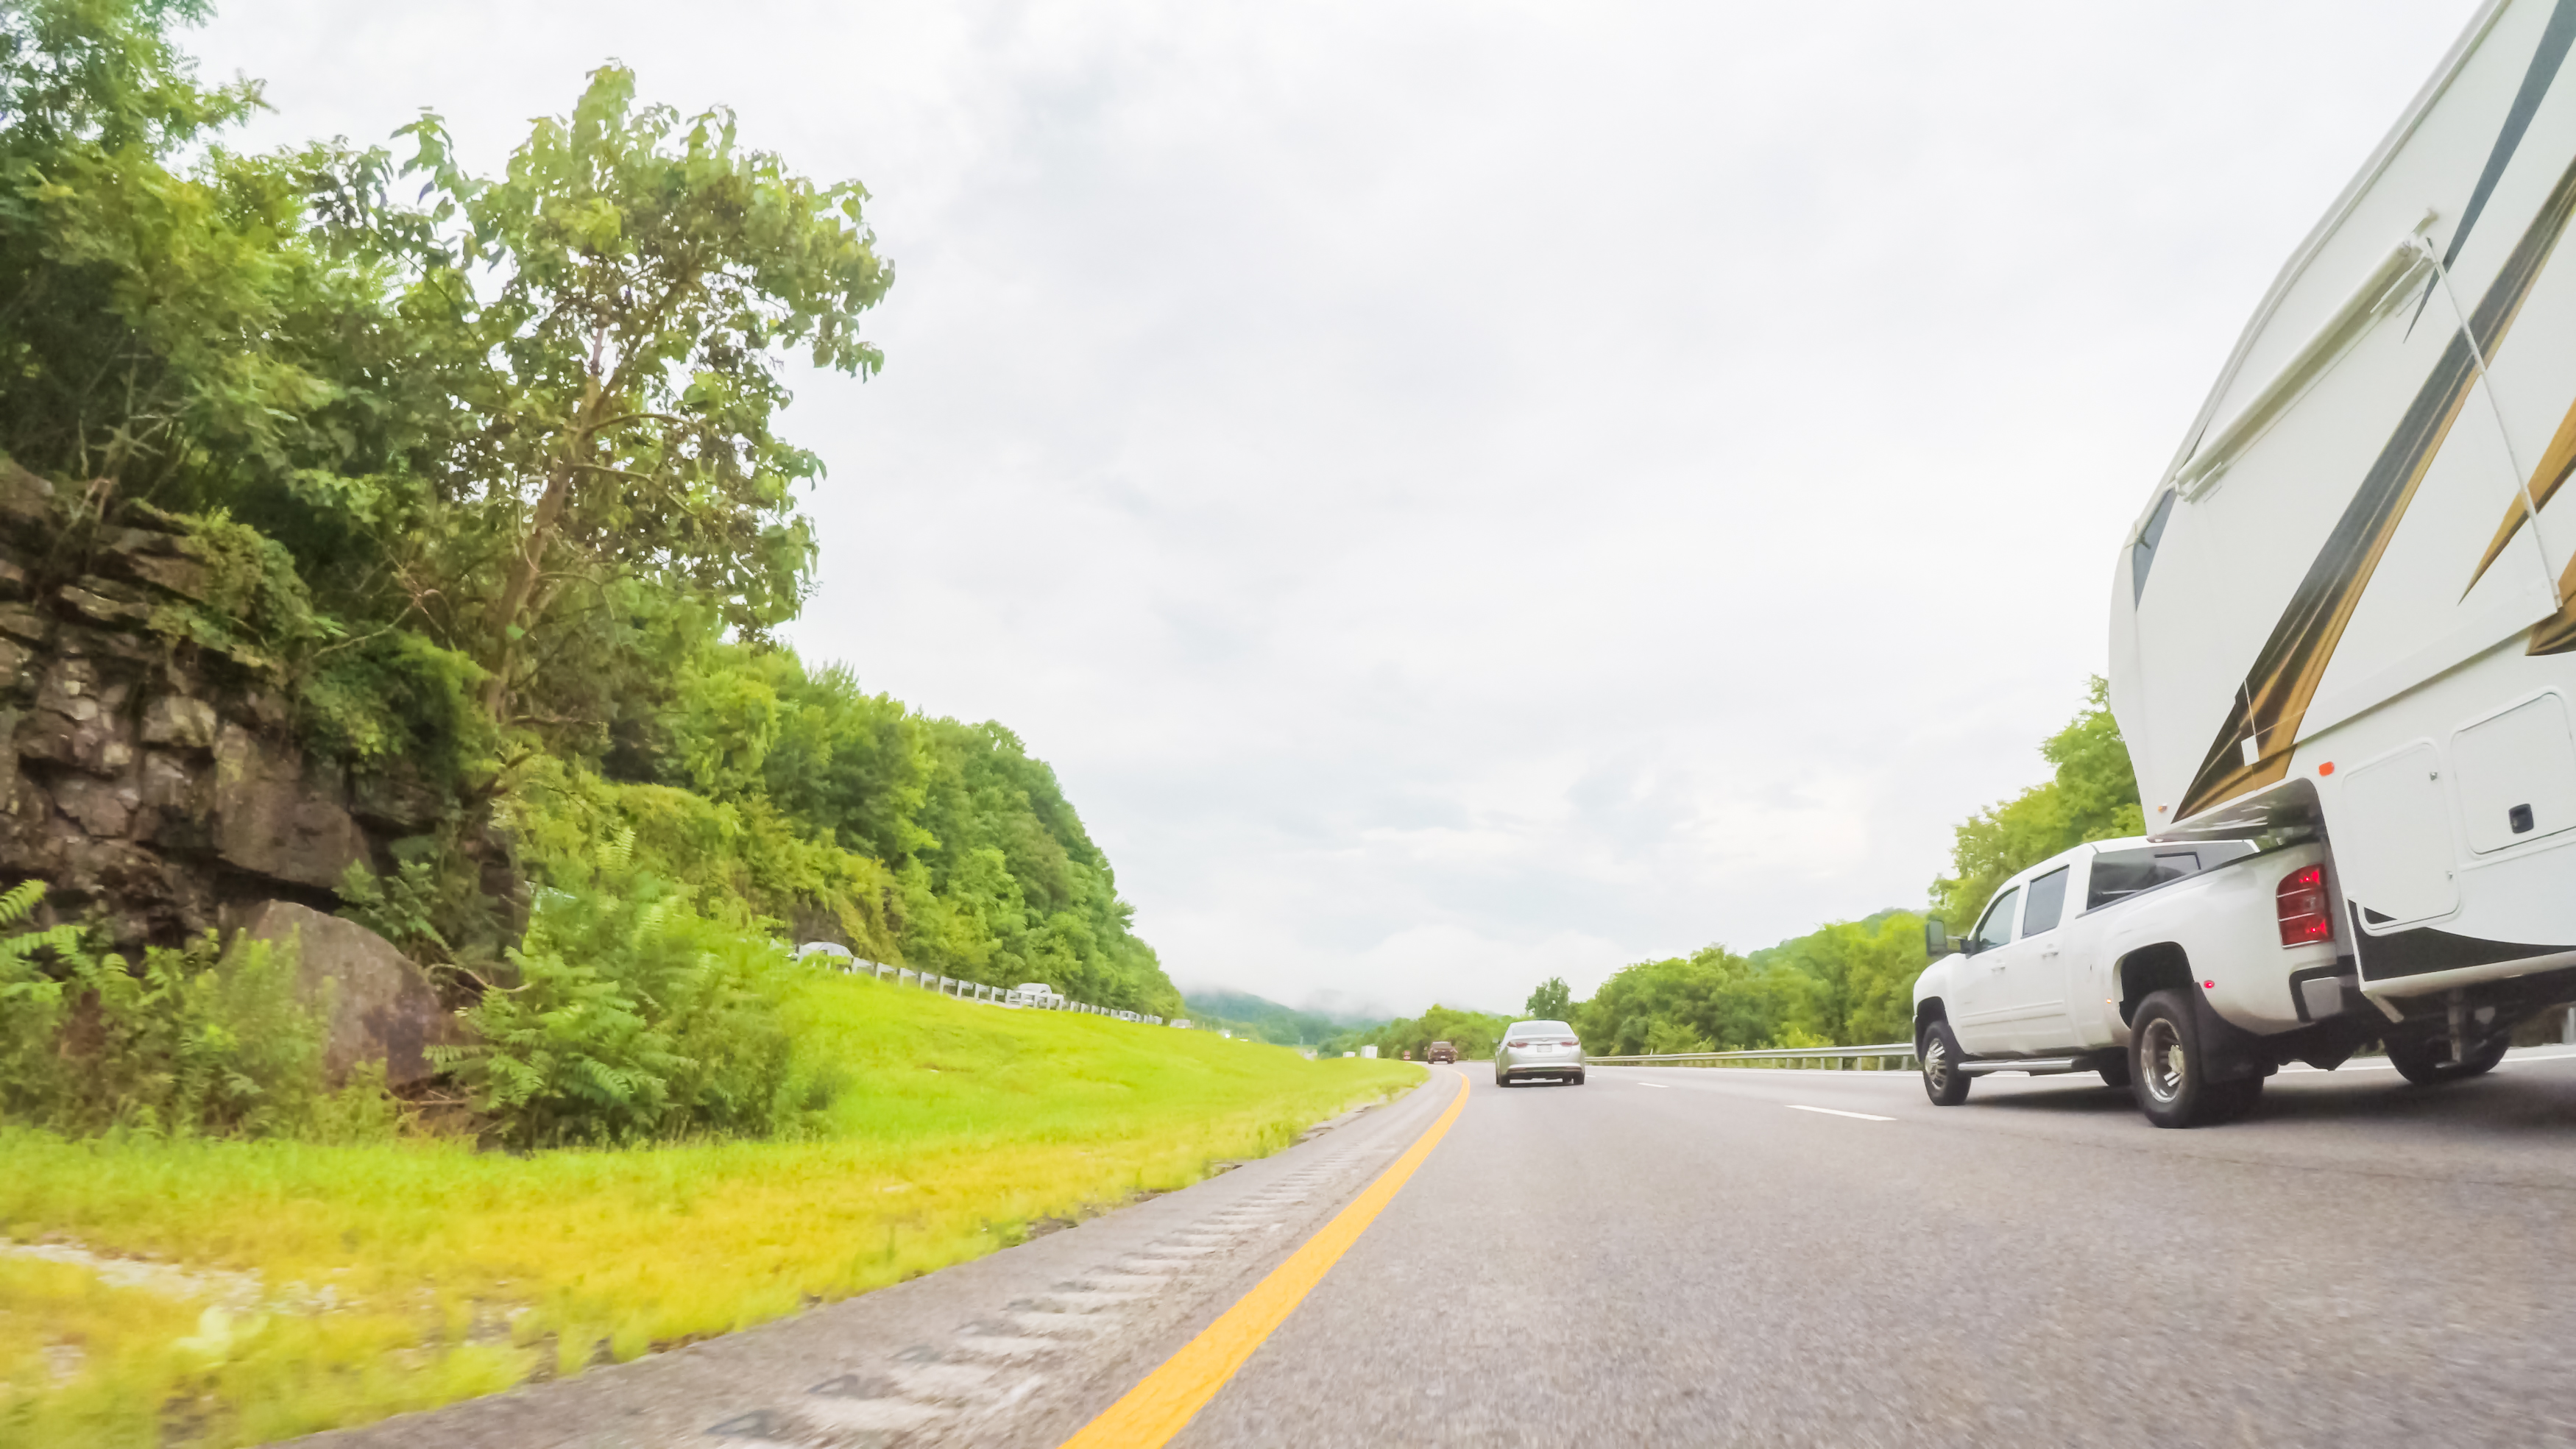 An RV driving on a Tennessee highway.